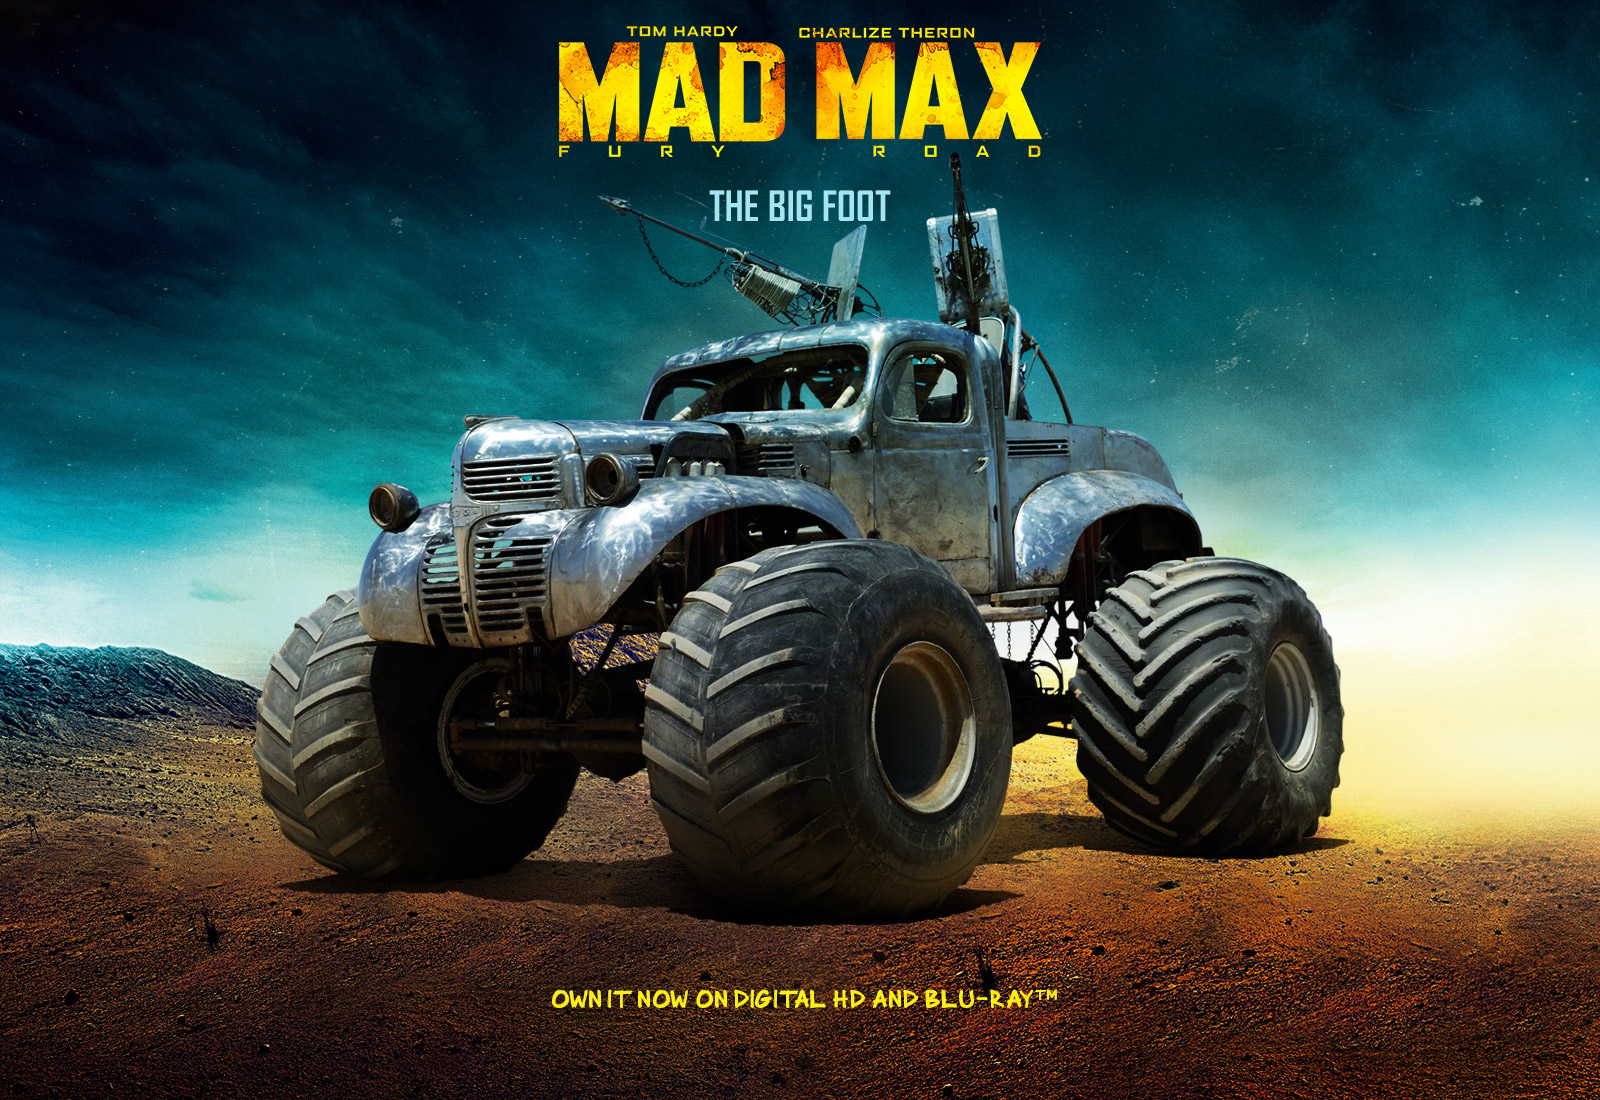 http://vehicleshowcase.madmaxmovie.com/images/download/madmax_bigfoot.jpg